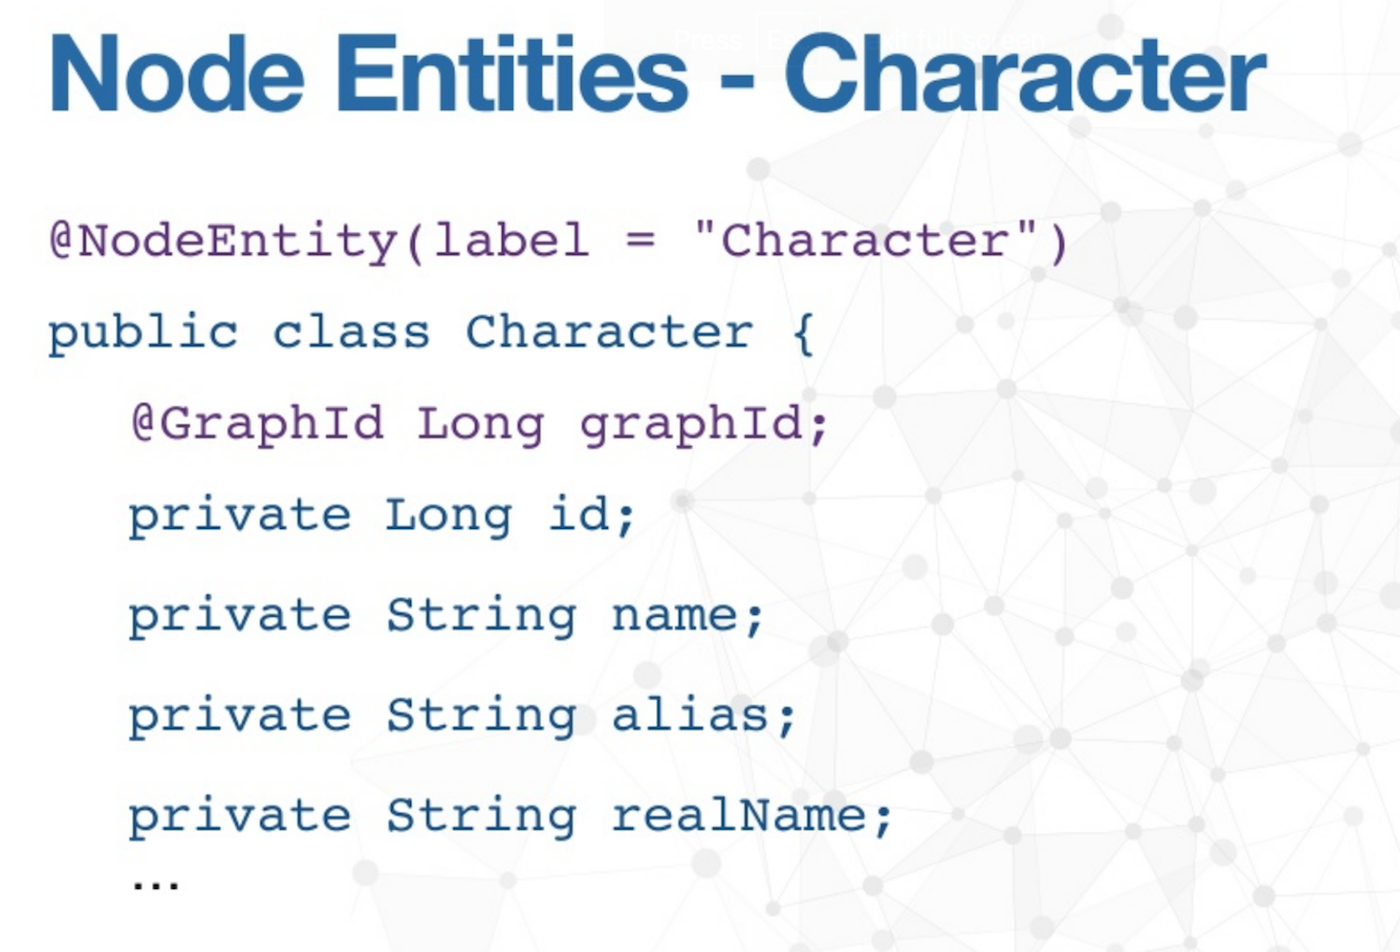 The Node Entities of Characters